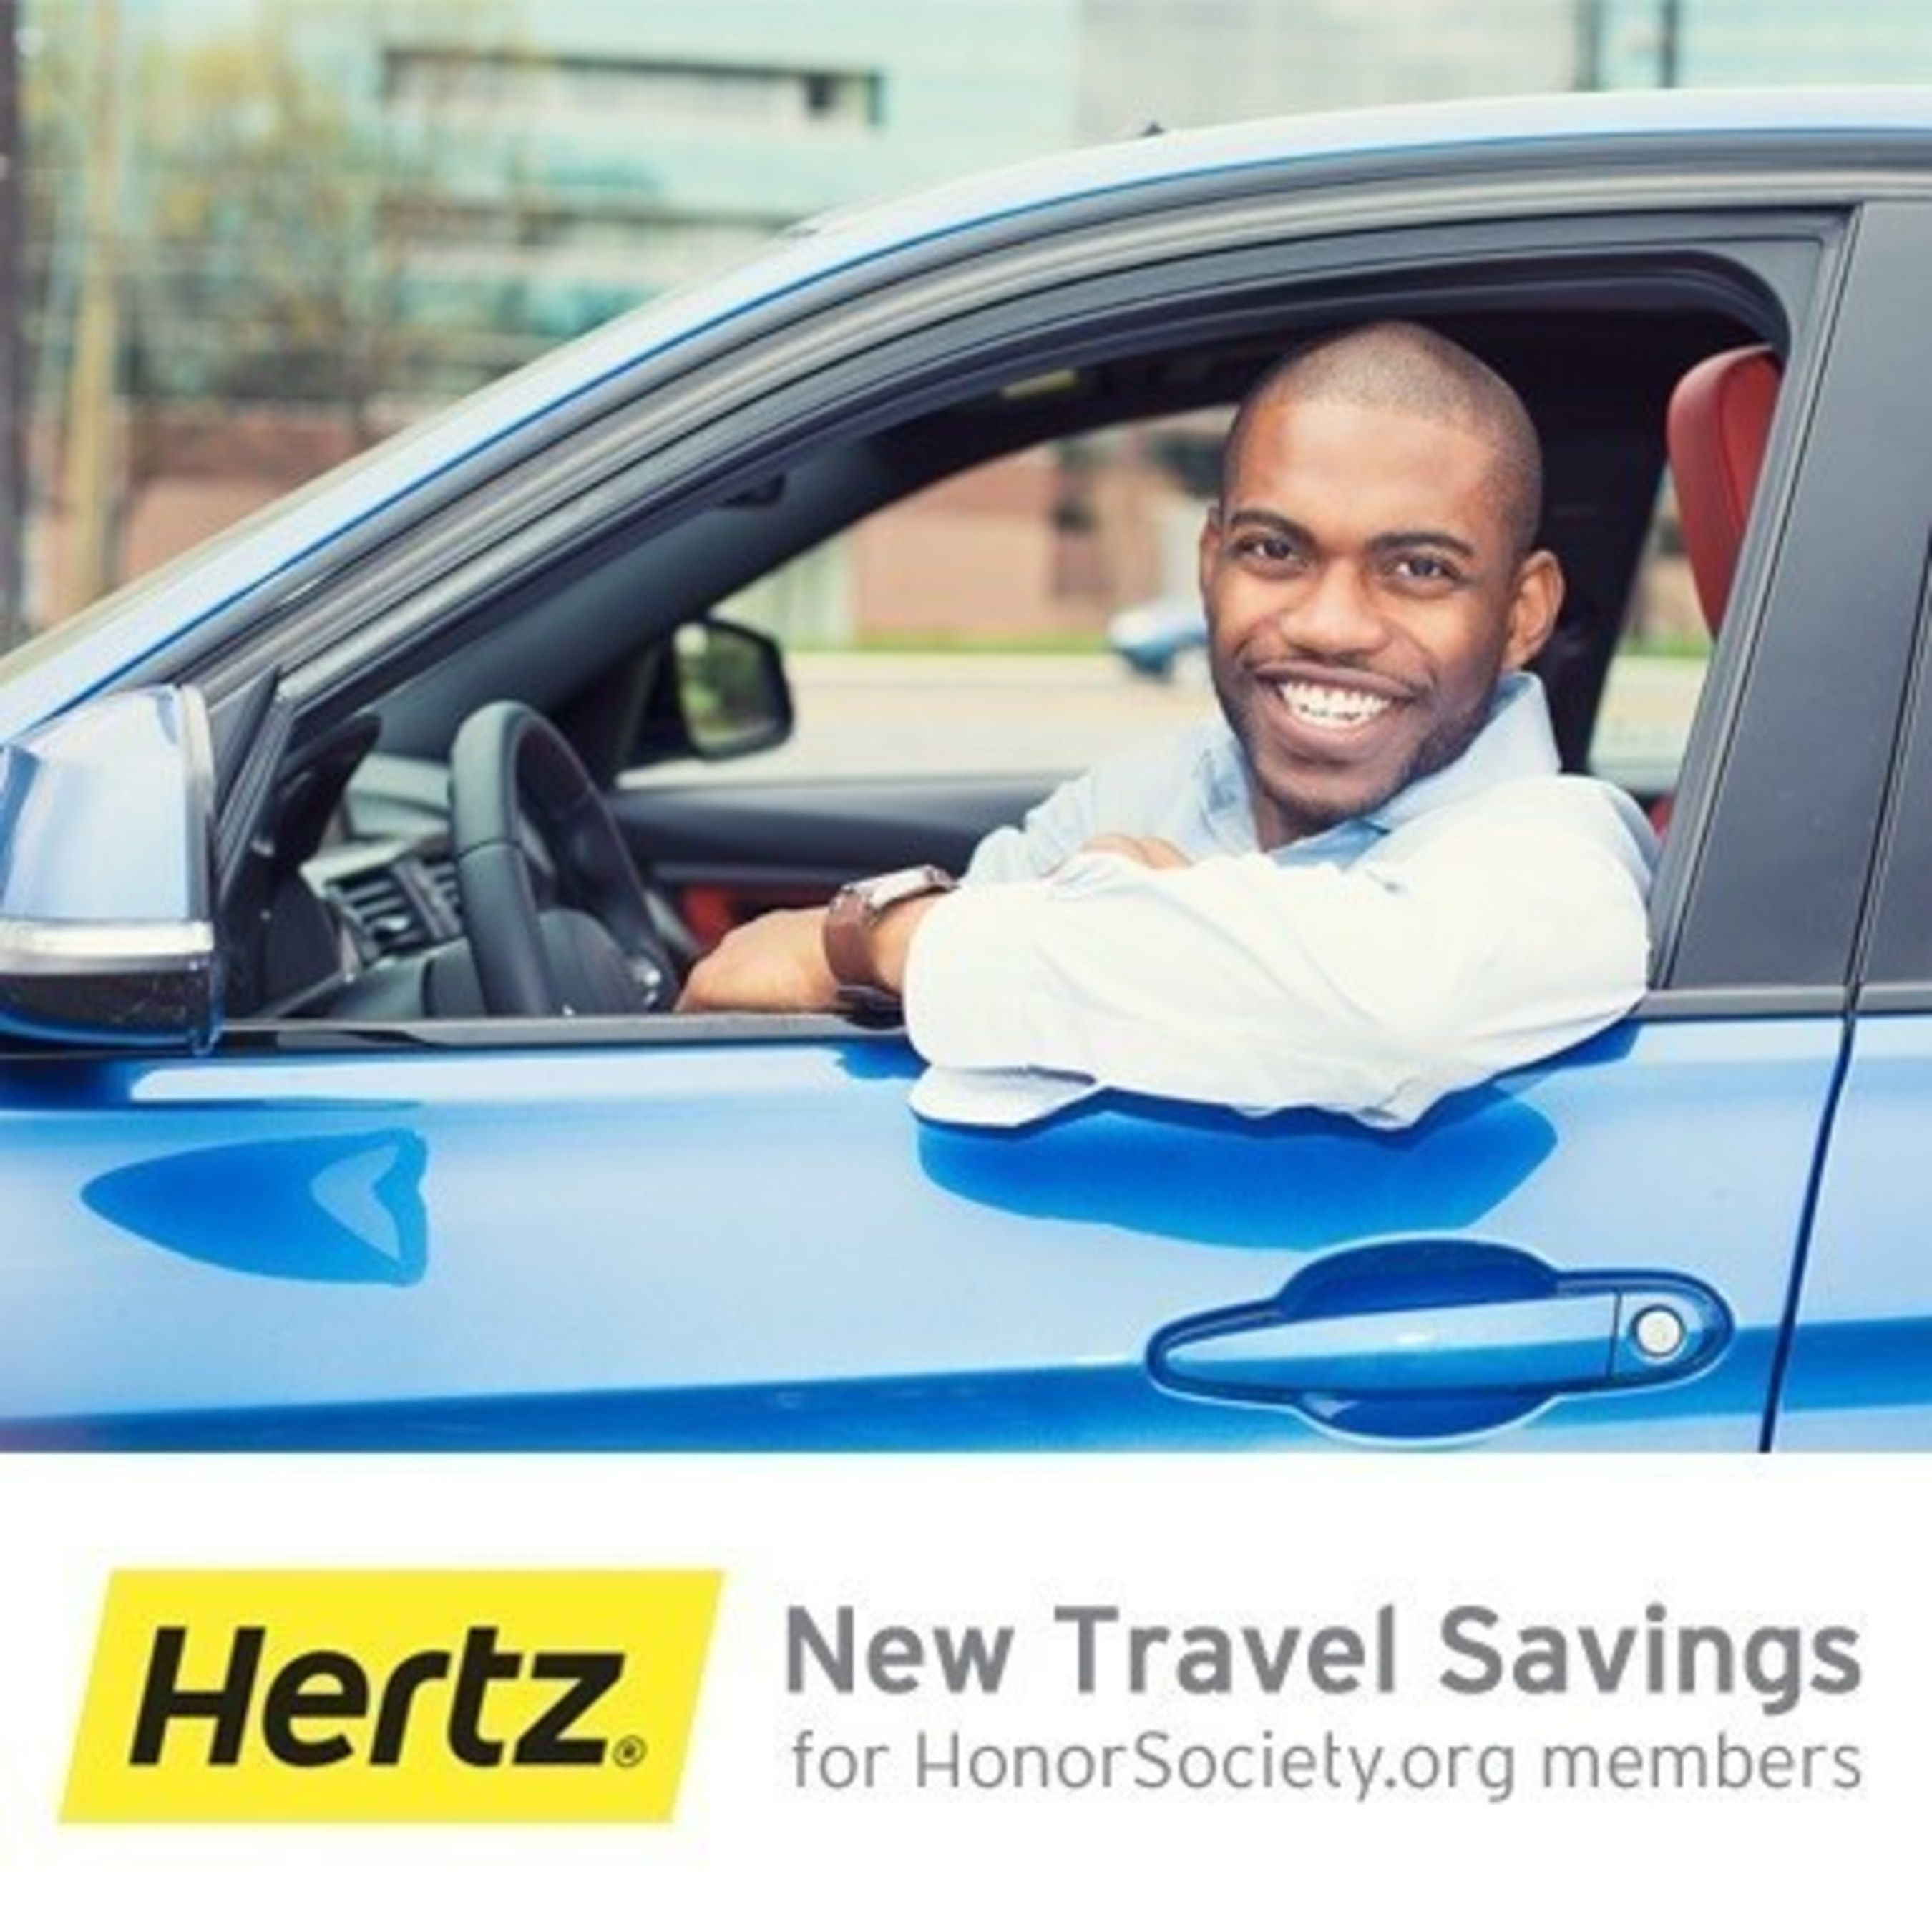 HonorSociety.org Launches Exclusive Hertz Car Rental Benefits to Members